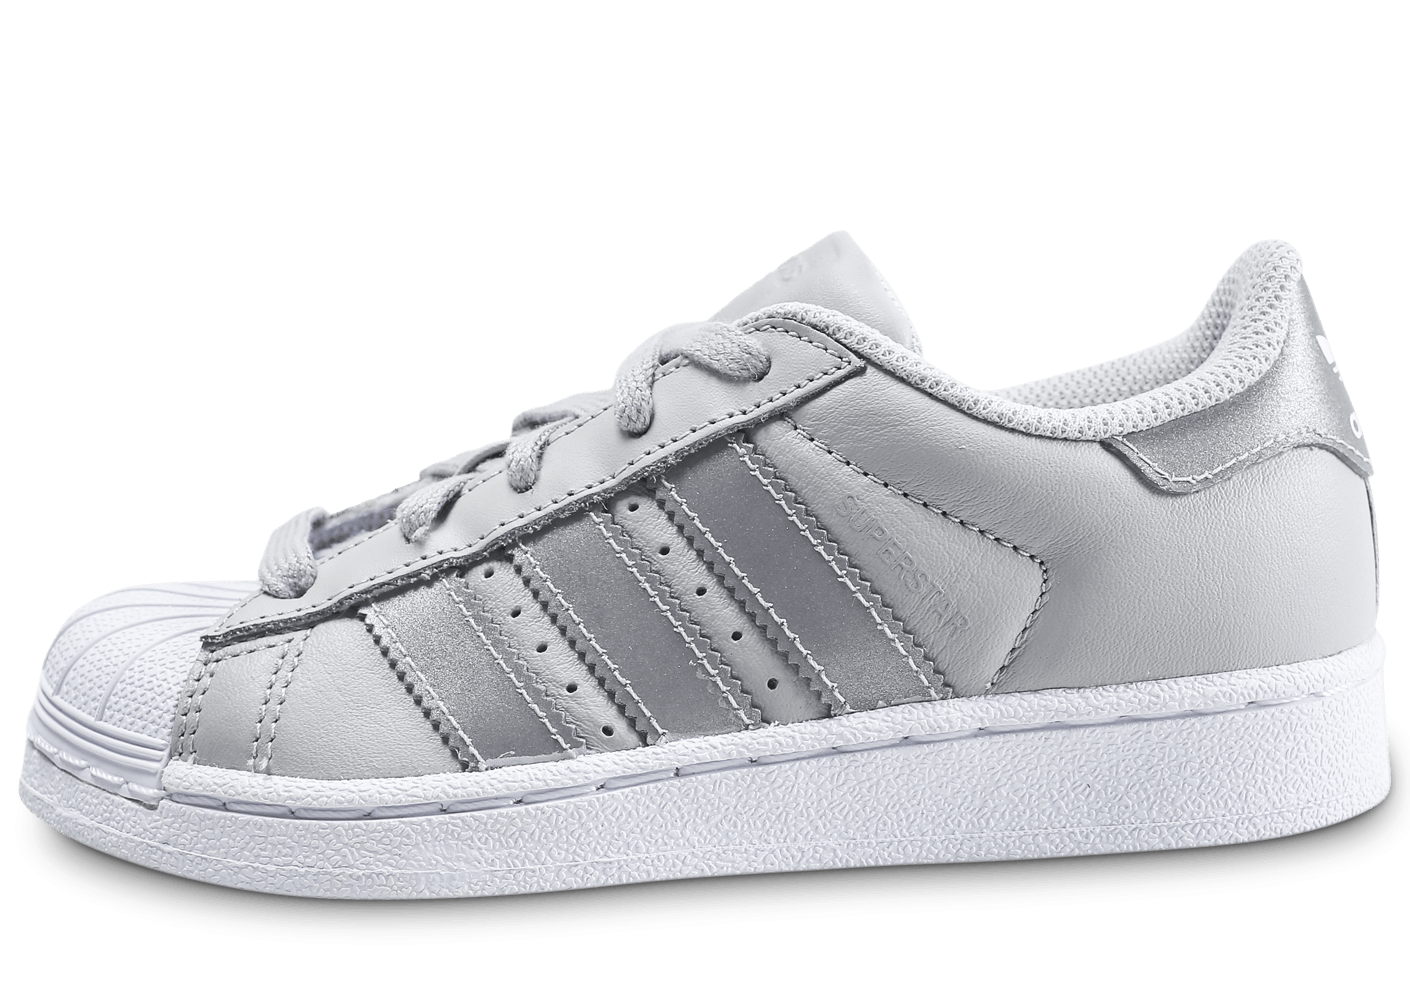 superstar blanche et noir brillant superstar adidas enfant adidas superstar 80s metal toe enfant noir. Adidas Superstar Bleu .